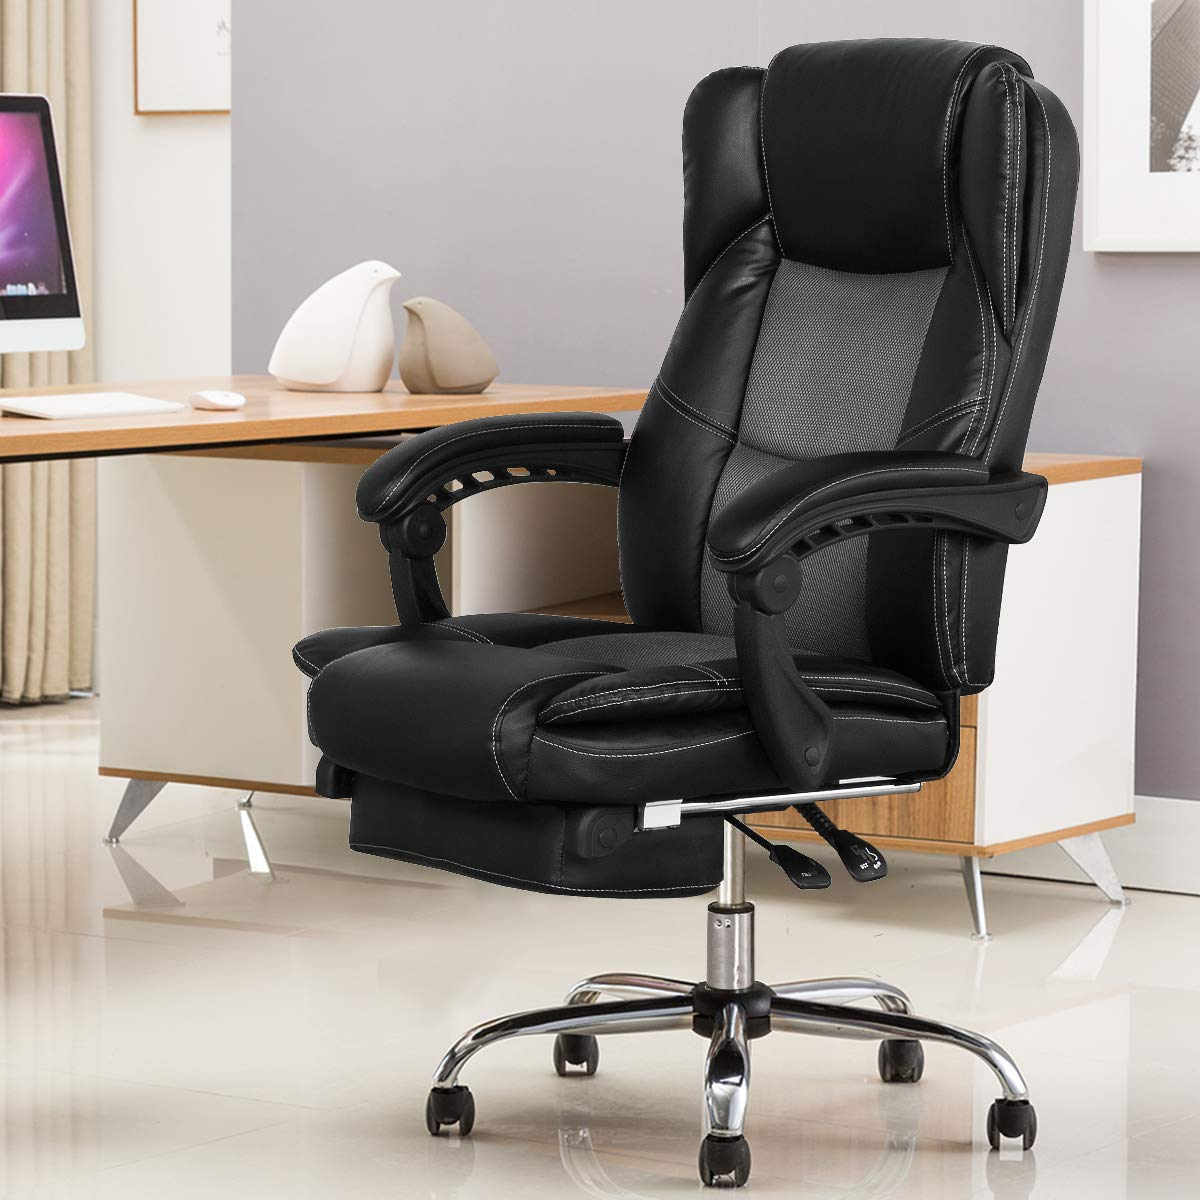 B2C2B Ergonomic Reclining Office Chair High Back Napping Desk Chair Computer Chair Leather Chair with Footrest Large Seat and Lumbar Support 300lbs Black